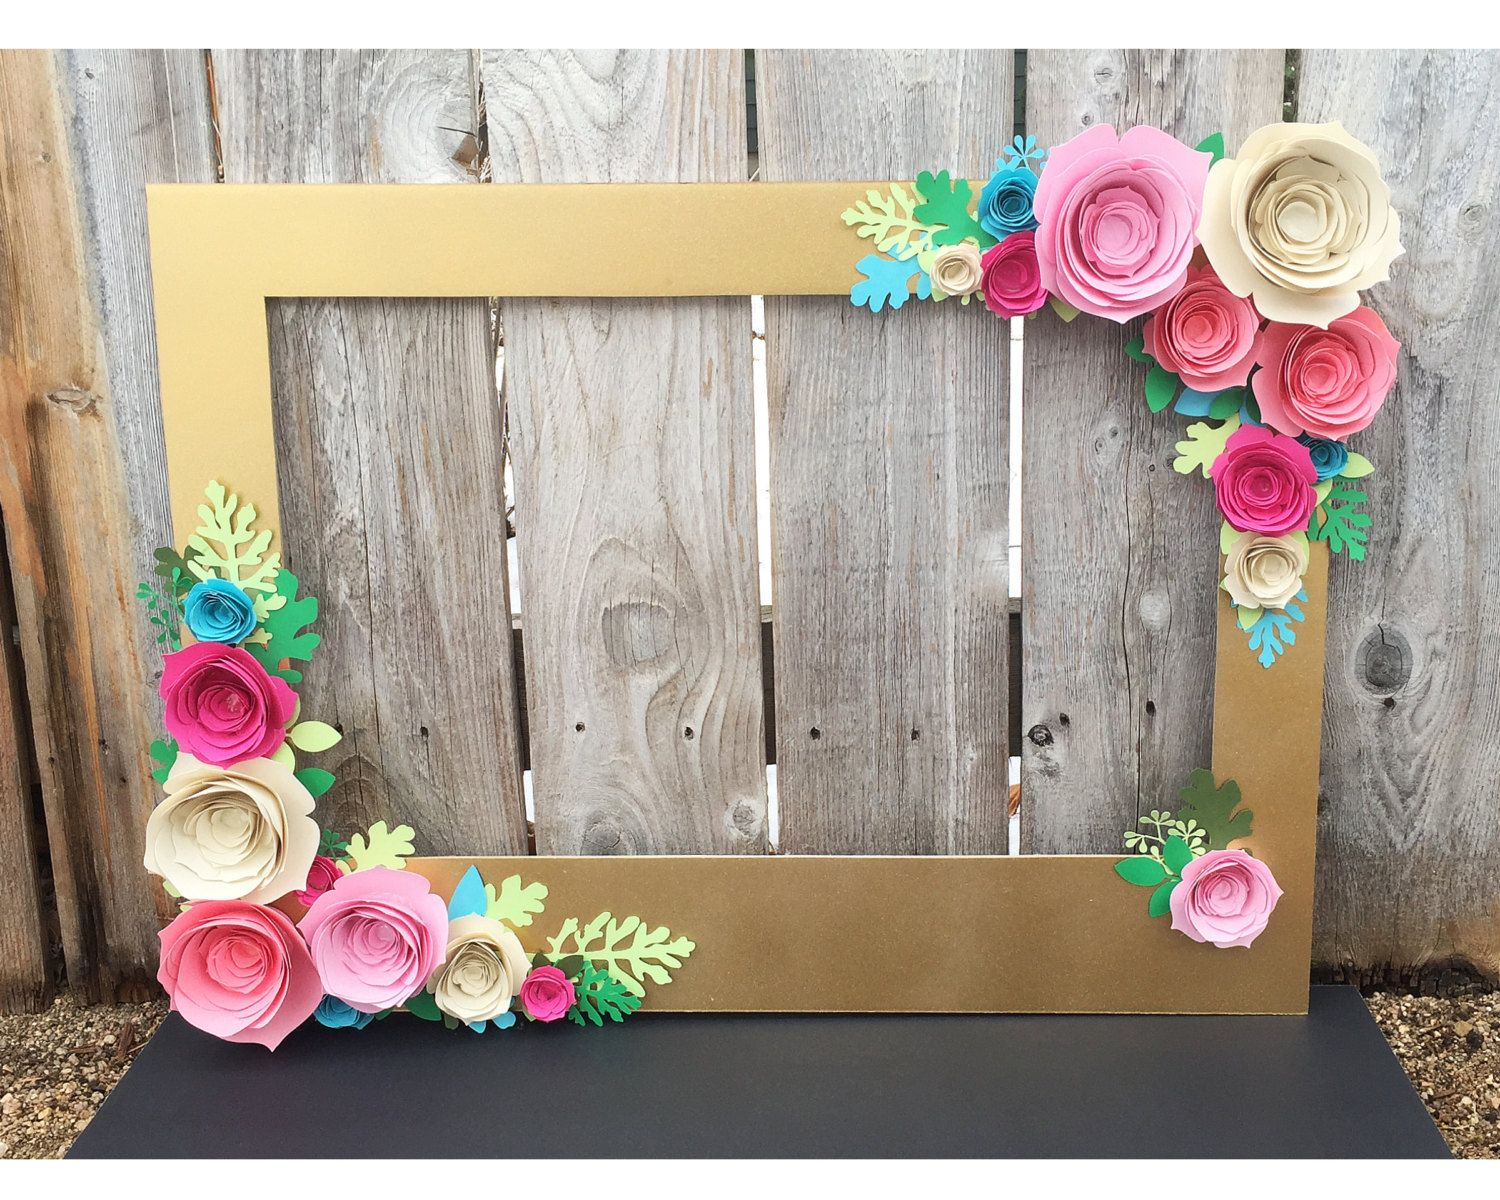 gold floral frame, photo booth prop with 3d flowers - perfect for